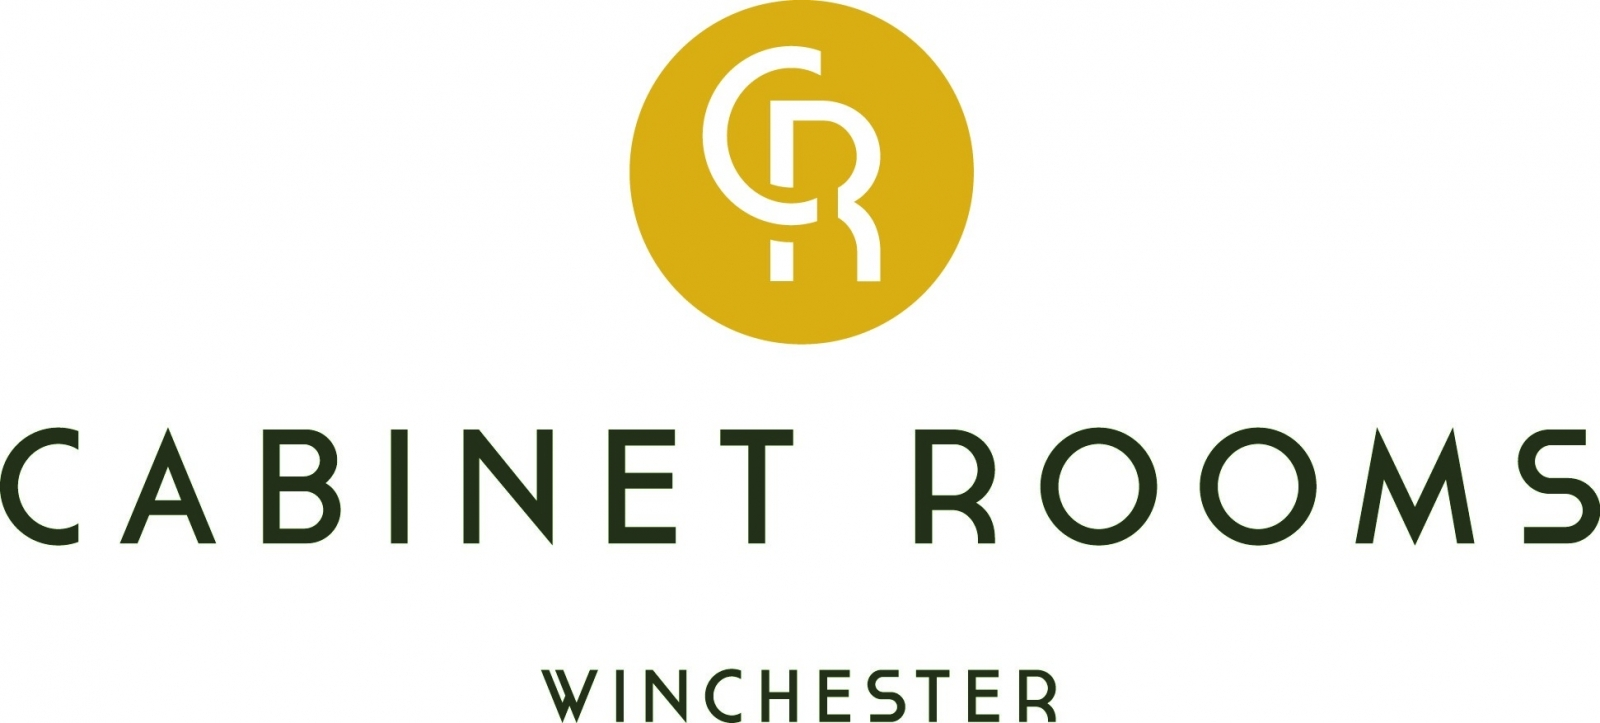 Cabinet Rooms Logo 1.jpg